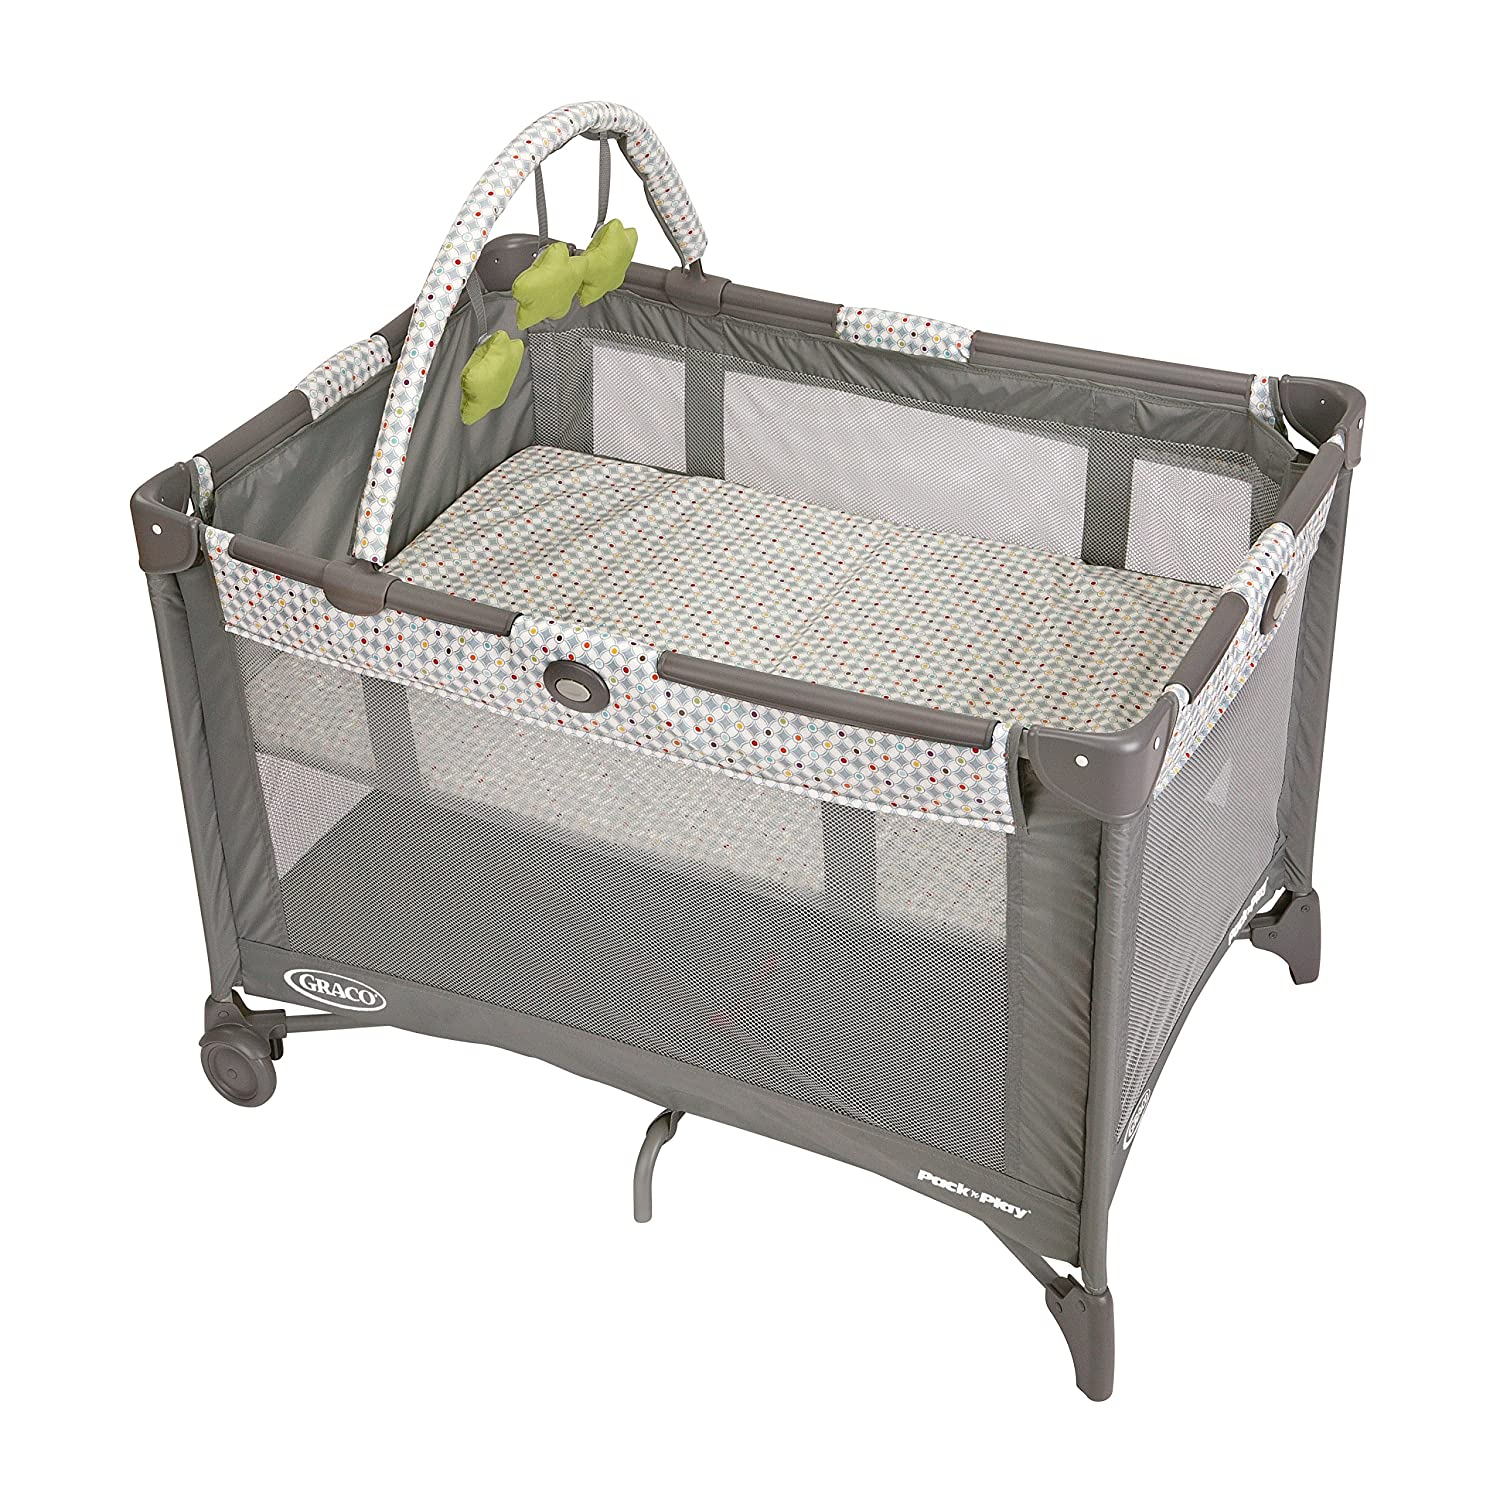 Graco Pack n Play On the Go Playard Includes Full-Size Infant Bassinet, Push Button Compact Fold, Pasadena